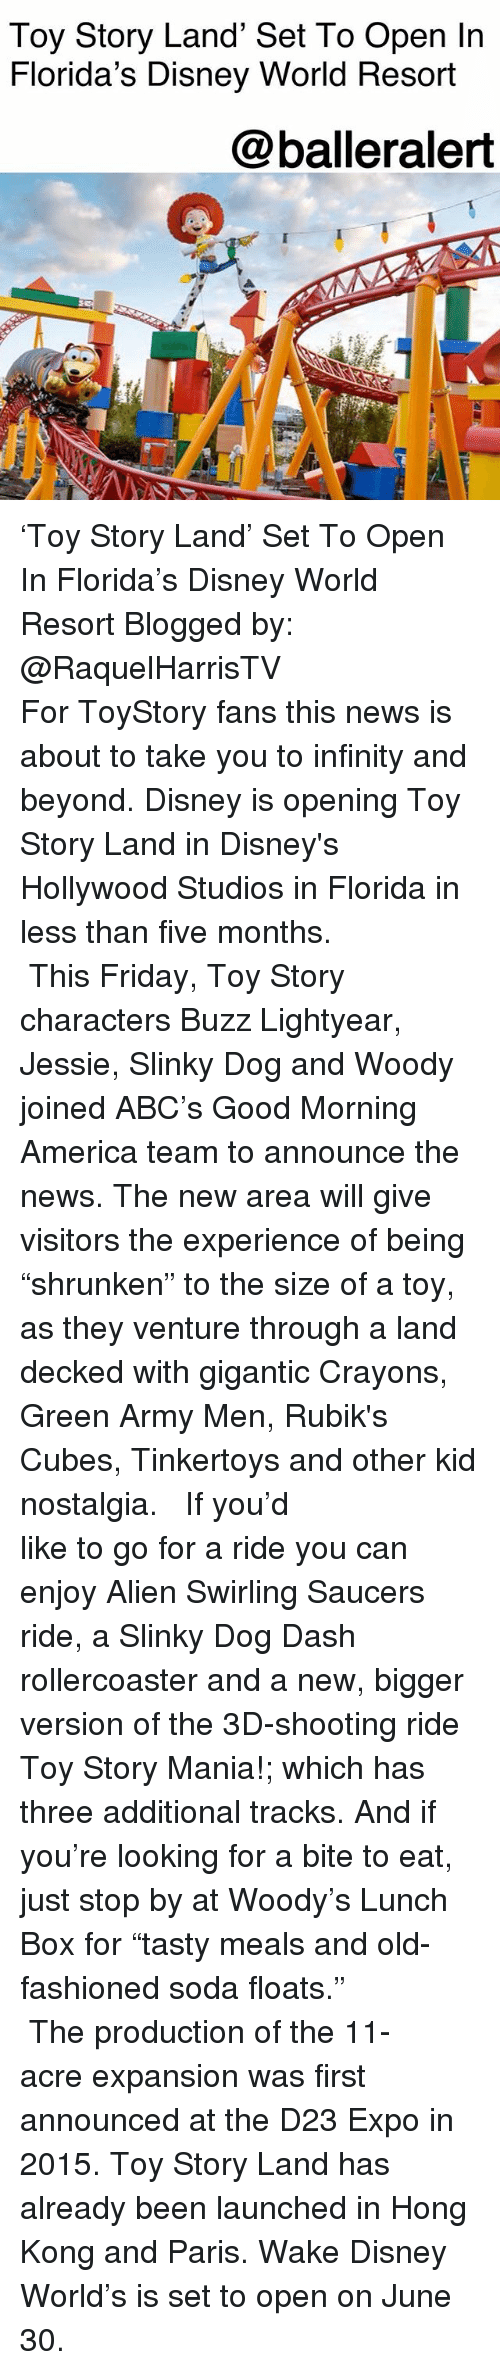 "lightyear: Toy Story Land' Set To Open In  Florida's Disney World Resort  @balleralert 'Toy Story Land' Set To Open In Florida's Disney World Resort Blogged by: @RaquelHarrisTV ⠀⠀⠀⠀⠀⠀⠀⠀⠀ ⠀⠀⠀⠀⠀⠀⠀⠀⠀ For ToyStory fans this news is about to take you to infinity and beyond. Disney is opening Toy Story Land in Disney's Hollywood Studios in Florida in less than five months. ⠀⠀⠀⠀⠀⠀⠀⠀⠀ ⠀⠀⠀⠀⠀⠀⠀⠀⠀ This Friday, Toy Story characters Buzz Lightyear, Jessie, Slinky Dog and Woody joined ABC's Good Morning America team to announce the news. The new area will give visitors the experience of being ""shrunken"" to the size of a toy, as they venture through a land decked with gigantic Crayons, Green Army Men, Rubik's Cubes, Tinkertoys and other kid nostalgia. ⠀⠀⠀⠀⠀⠀⠀⠀⠀ ⠀⠀⠀⠀⠀⠀⠀⠀⠀ If you'd like to go for a ride you can enjoy Alien Swirling Saucers ride, a Slinky Dog Dash rollercoaster and a new, bigger version of the 3D-shooting ride Toy Story Mania!; which has three additional tracks. And if you're looking for a bite to eat, just stop by at Woody's Lunch Box for ""tasty meals and old-fashioned soda floats."" ⠀⠀⠀⠀⠀⠀⠀⠀⠀ ⠀⠀⠀⠀⠀⠀⠀⠀⠀ The production of the 11-acre expansion was first announced at the D23 Expo in 2015. Toy Story Land has already been launched in Hong Kong and Paris. Wake Disney World's is set to open on June 30."